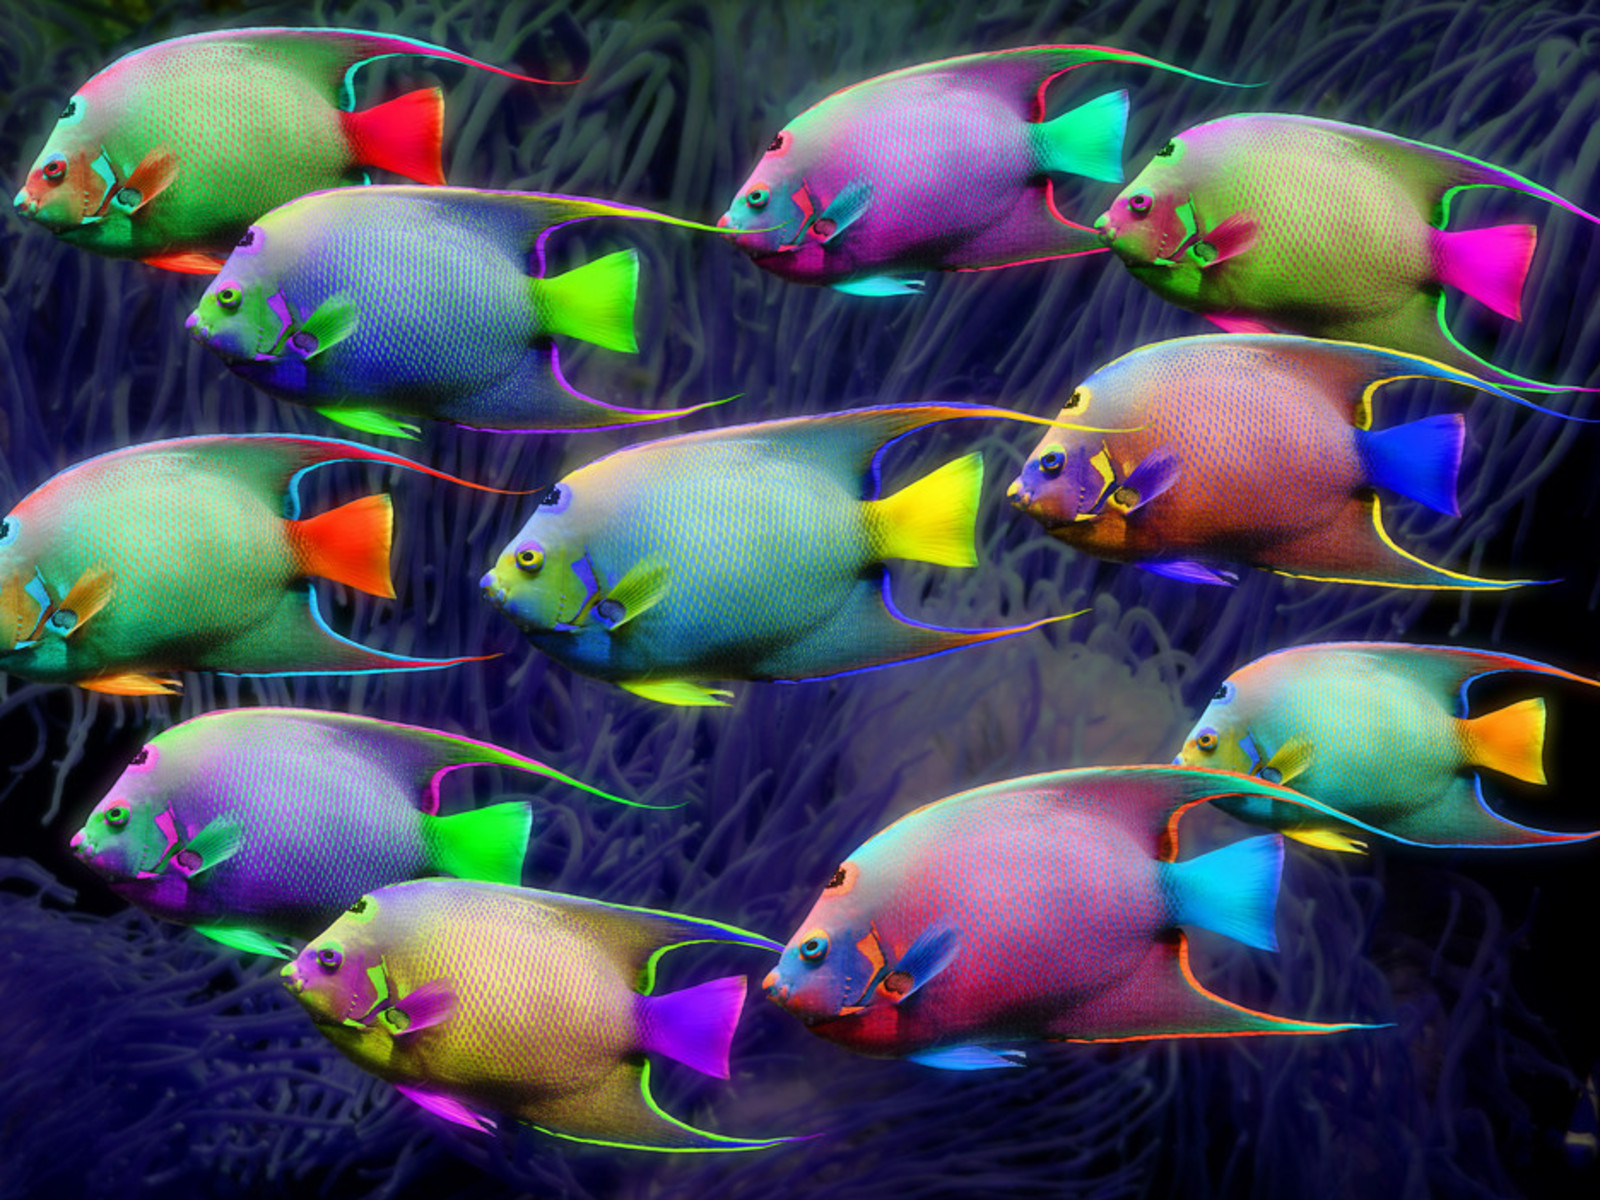 Neon colors rock images fish hd wallpaper and background for What color are fish